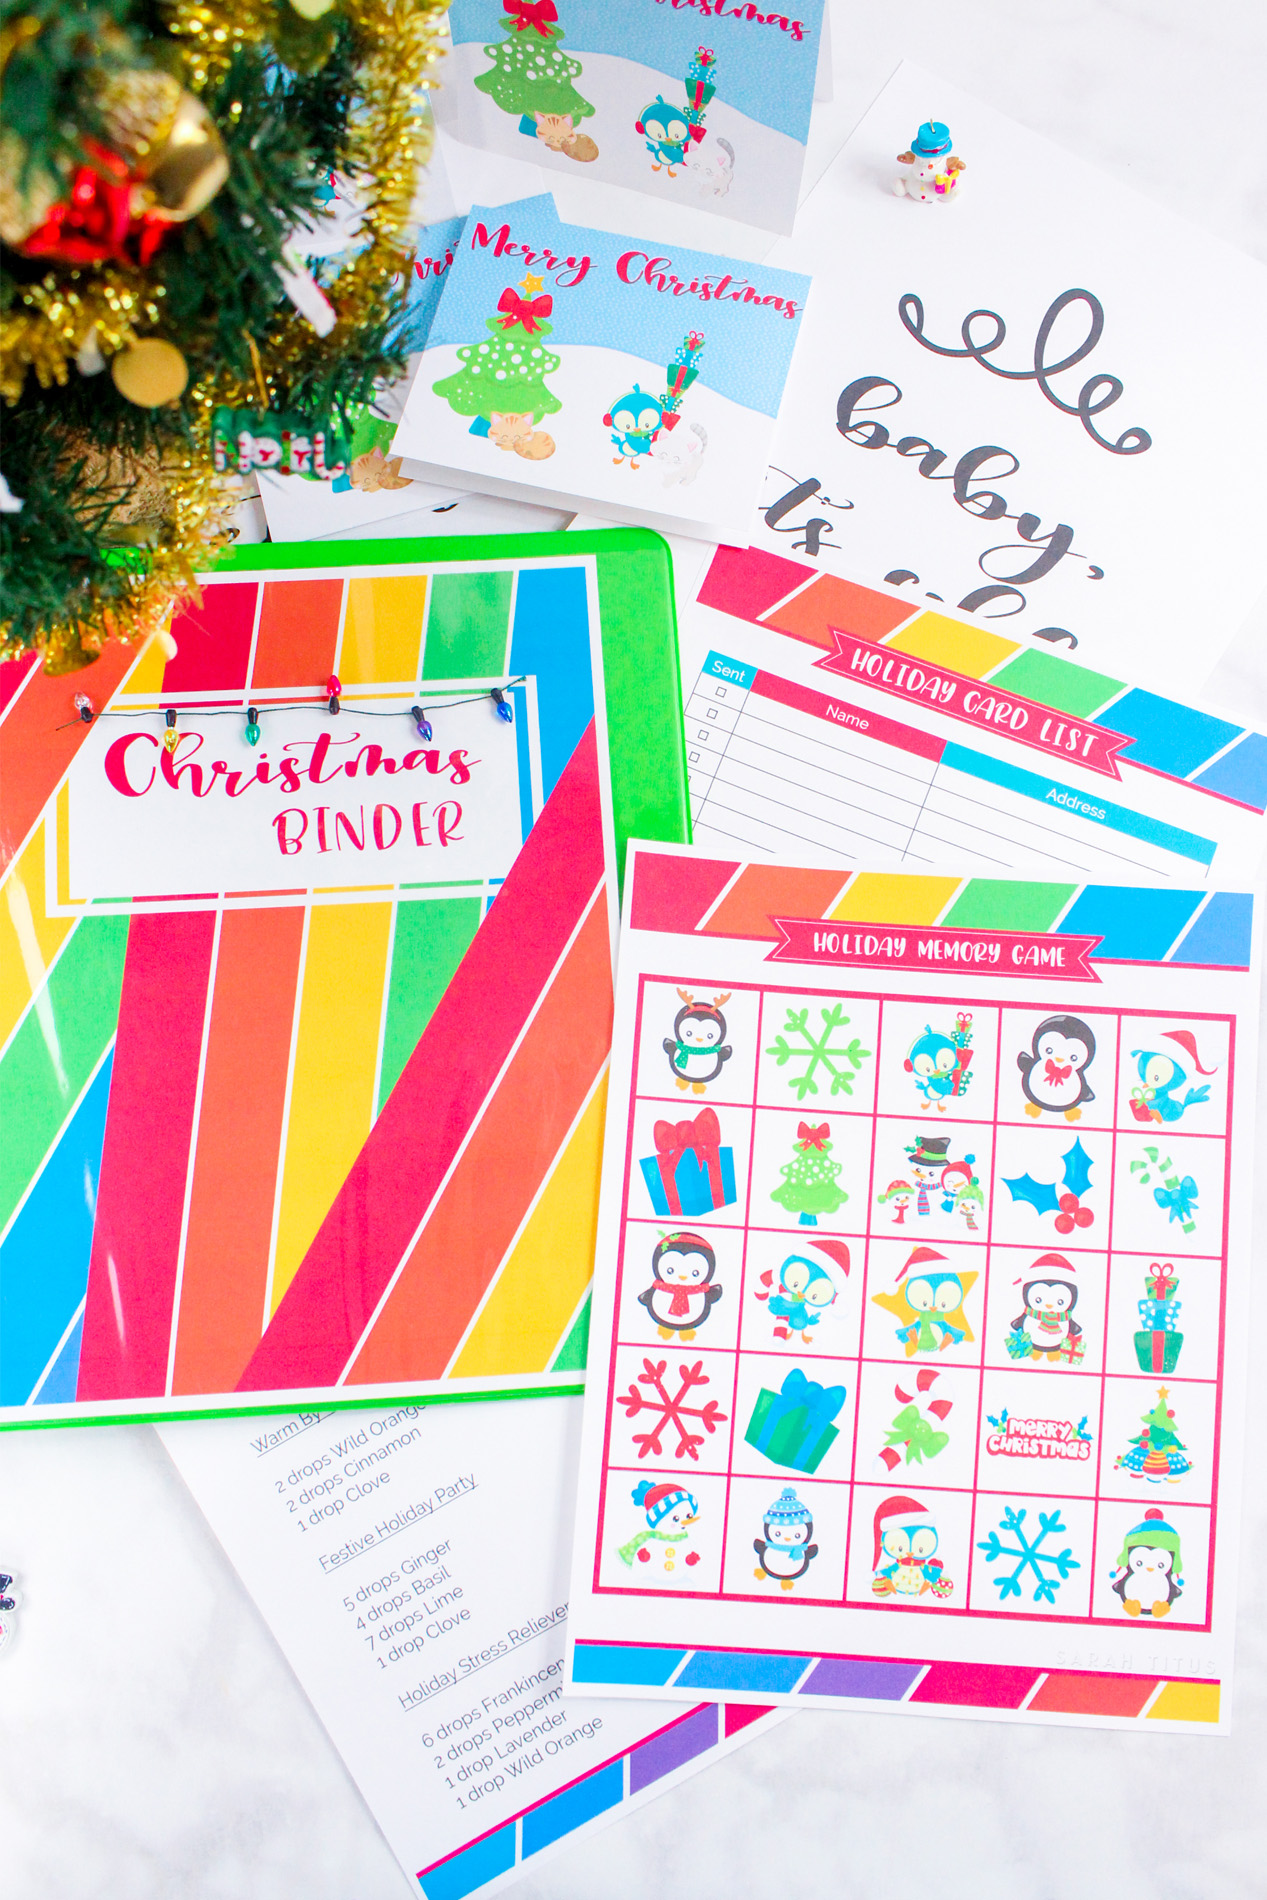 Love all things Christmas? Then you will NOT want to miss your chance to get the new 80+ page Christmas Binder.